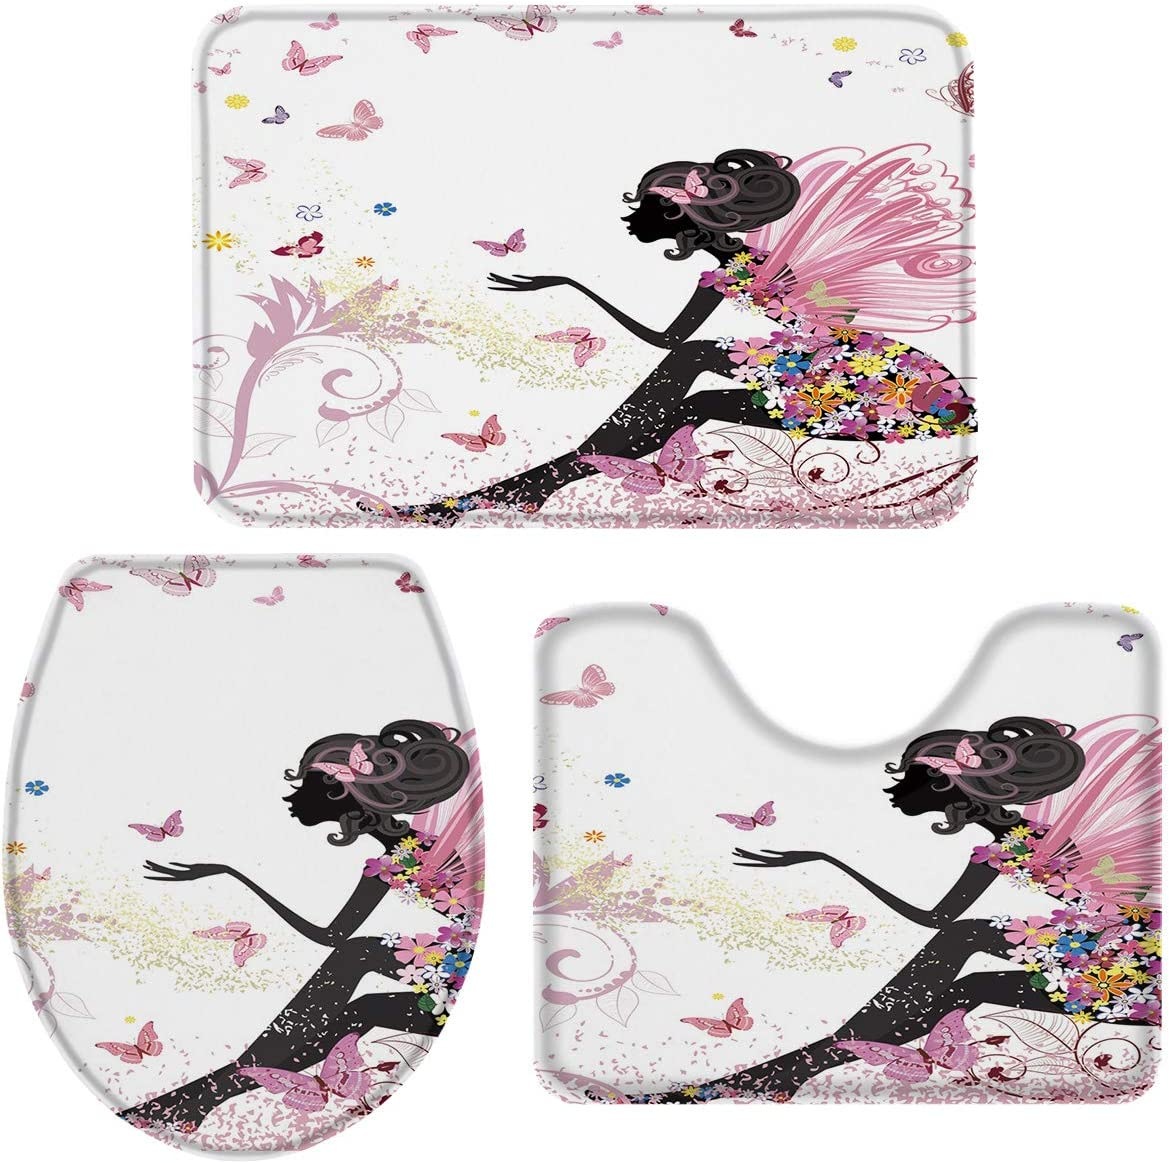 3-Piece Bath Manufacturer direct delivery Rug and Mat Sets Award African Butterfly Woman Cartoon N